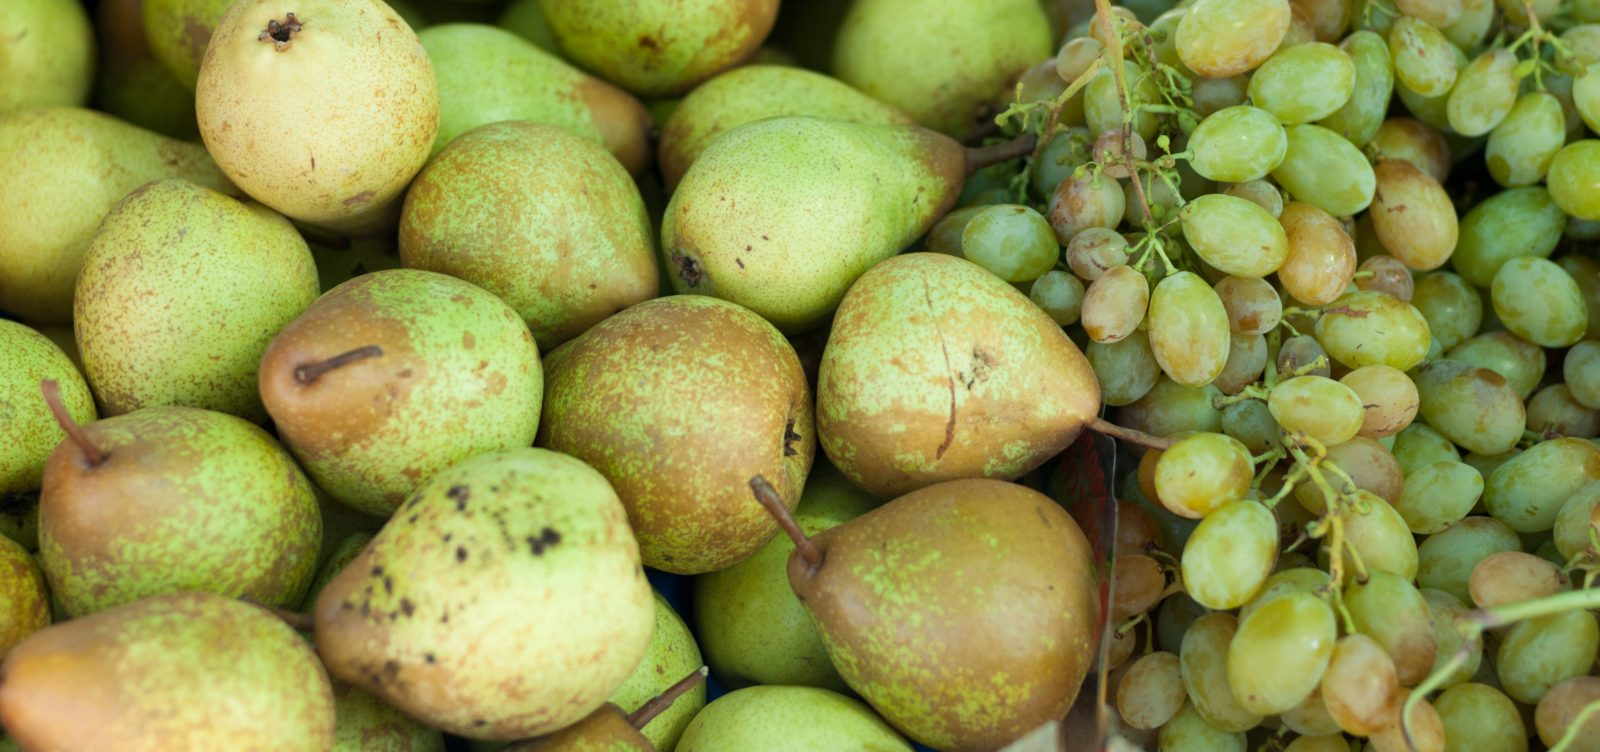 Green pears and grapes market fruit texture